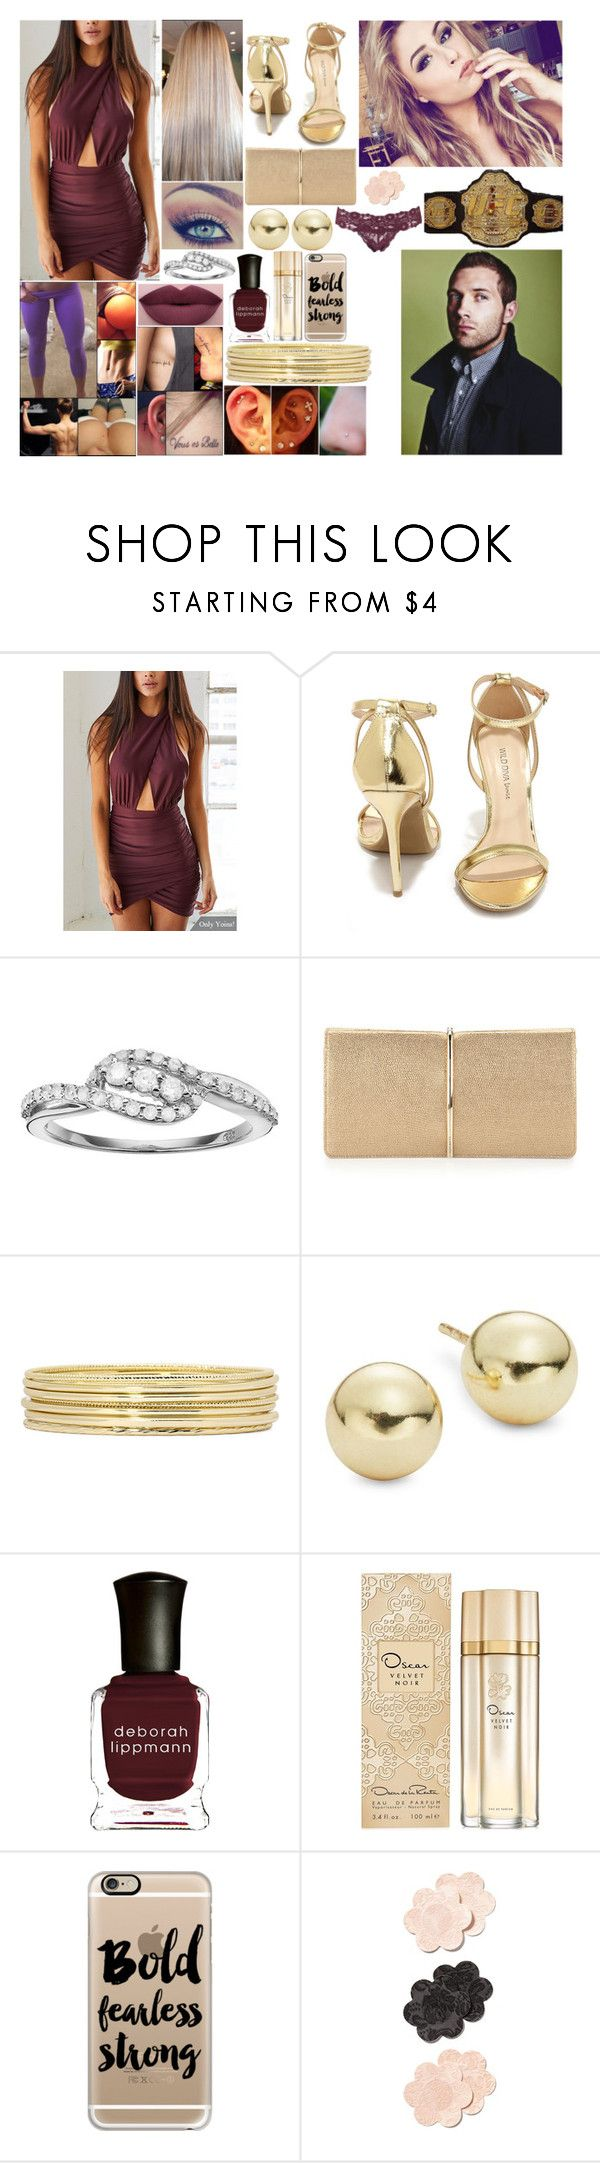 """""""Front row for UFC Fight Night 92"""" by queennikkiufc ❤ liked on Polyvore featuring Wild Diva, NYX, I Promise You, Nina Ricci, Liz Claiborne, Lord & Taylor, Deborah Lippmann, Oscar de la Renta, Casetify and Topshop"""